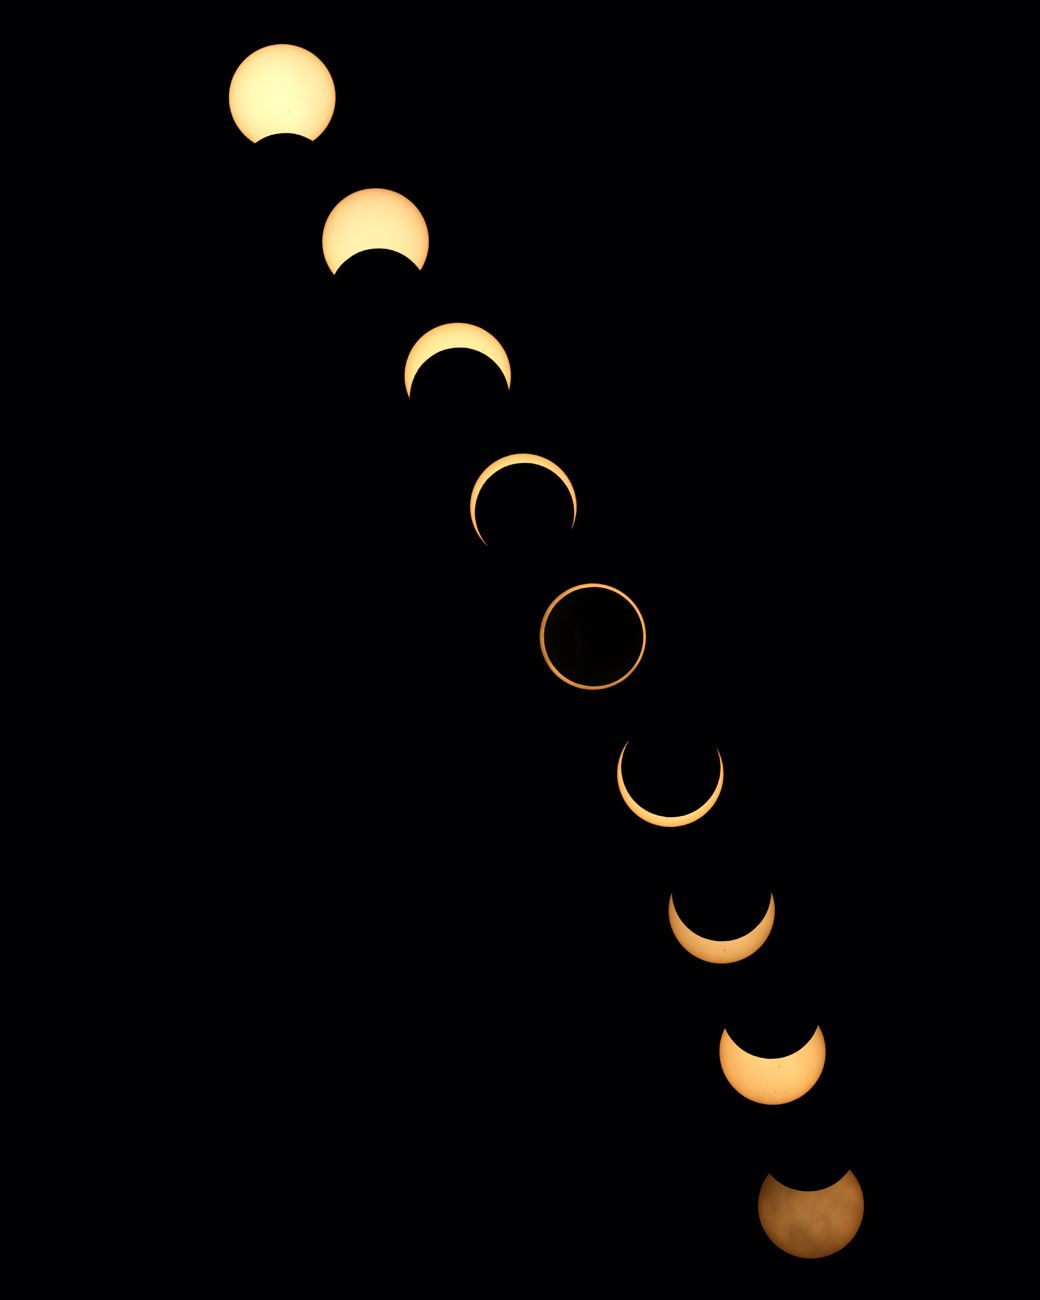 Annular Solar Eclipse Sequence